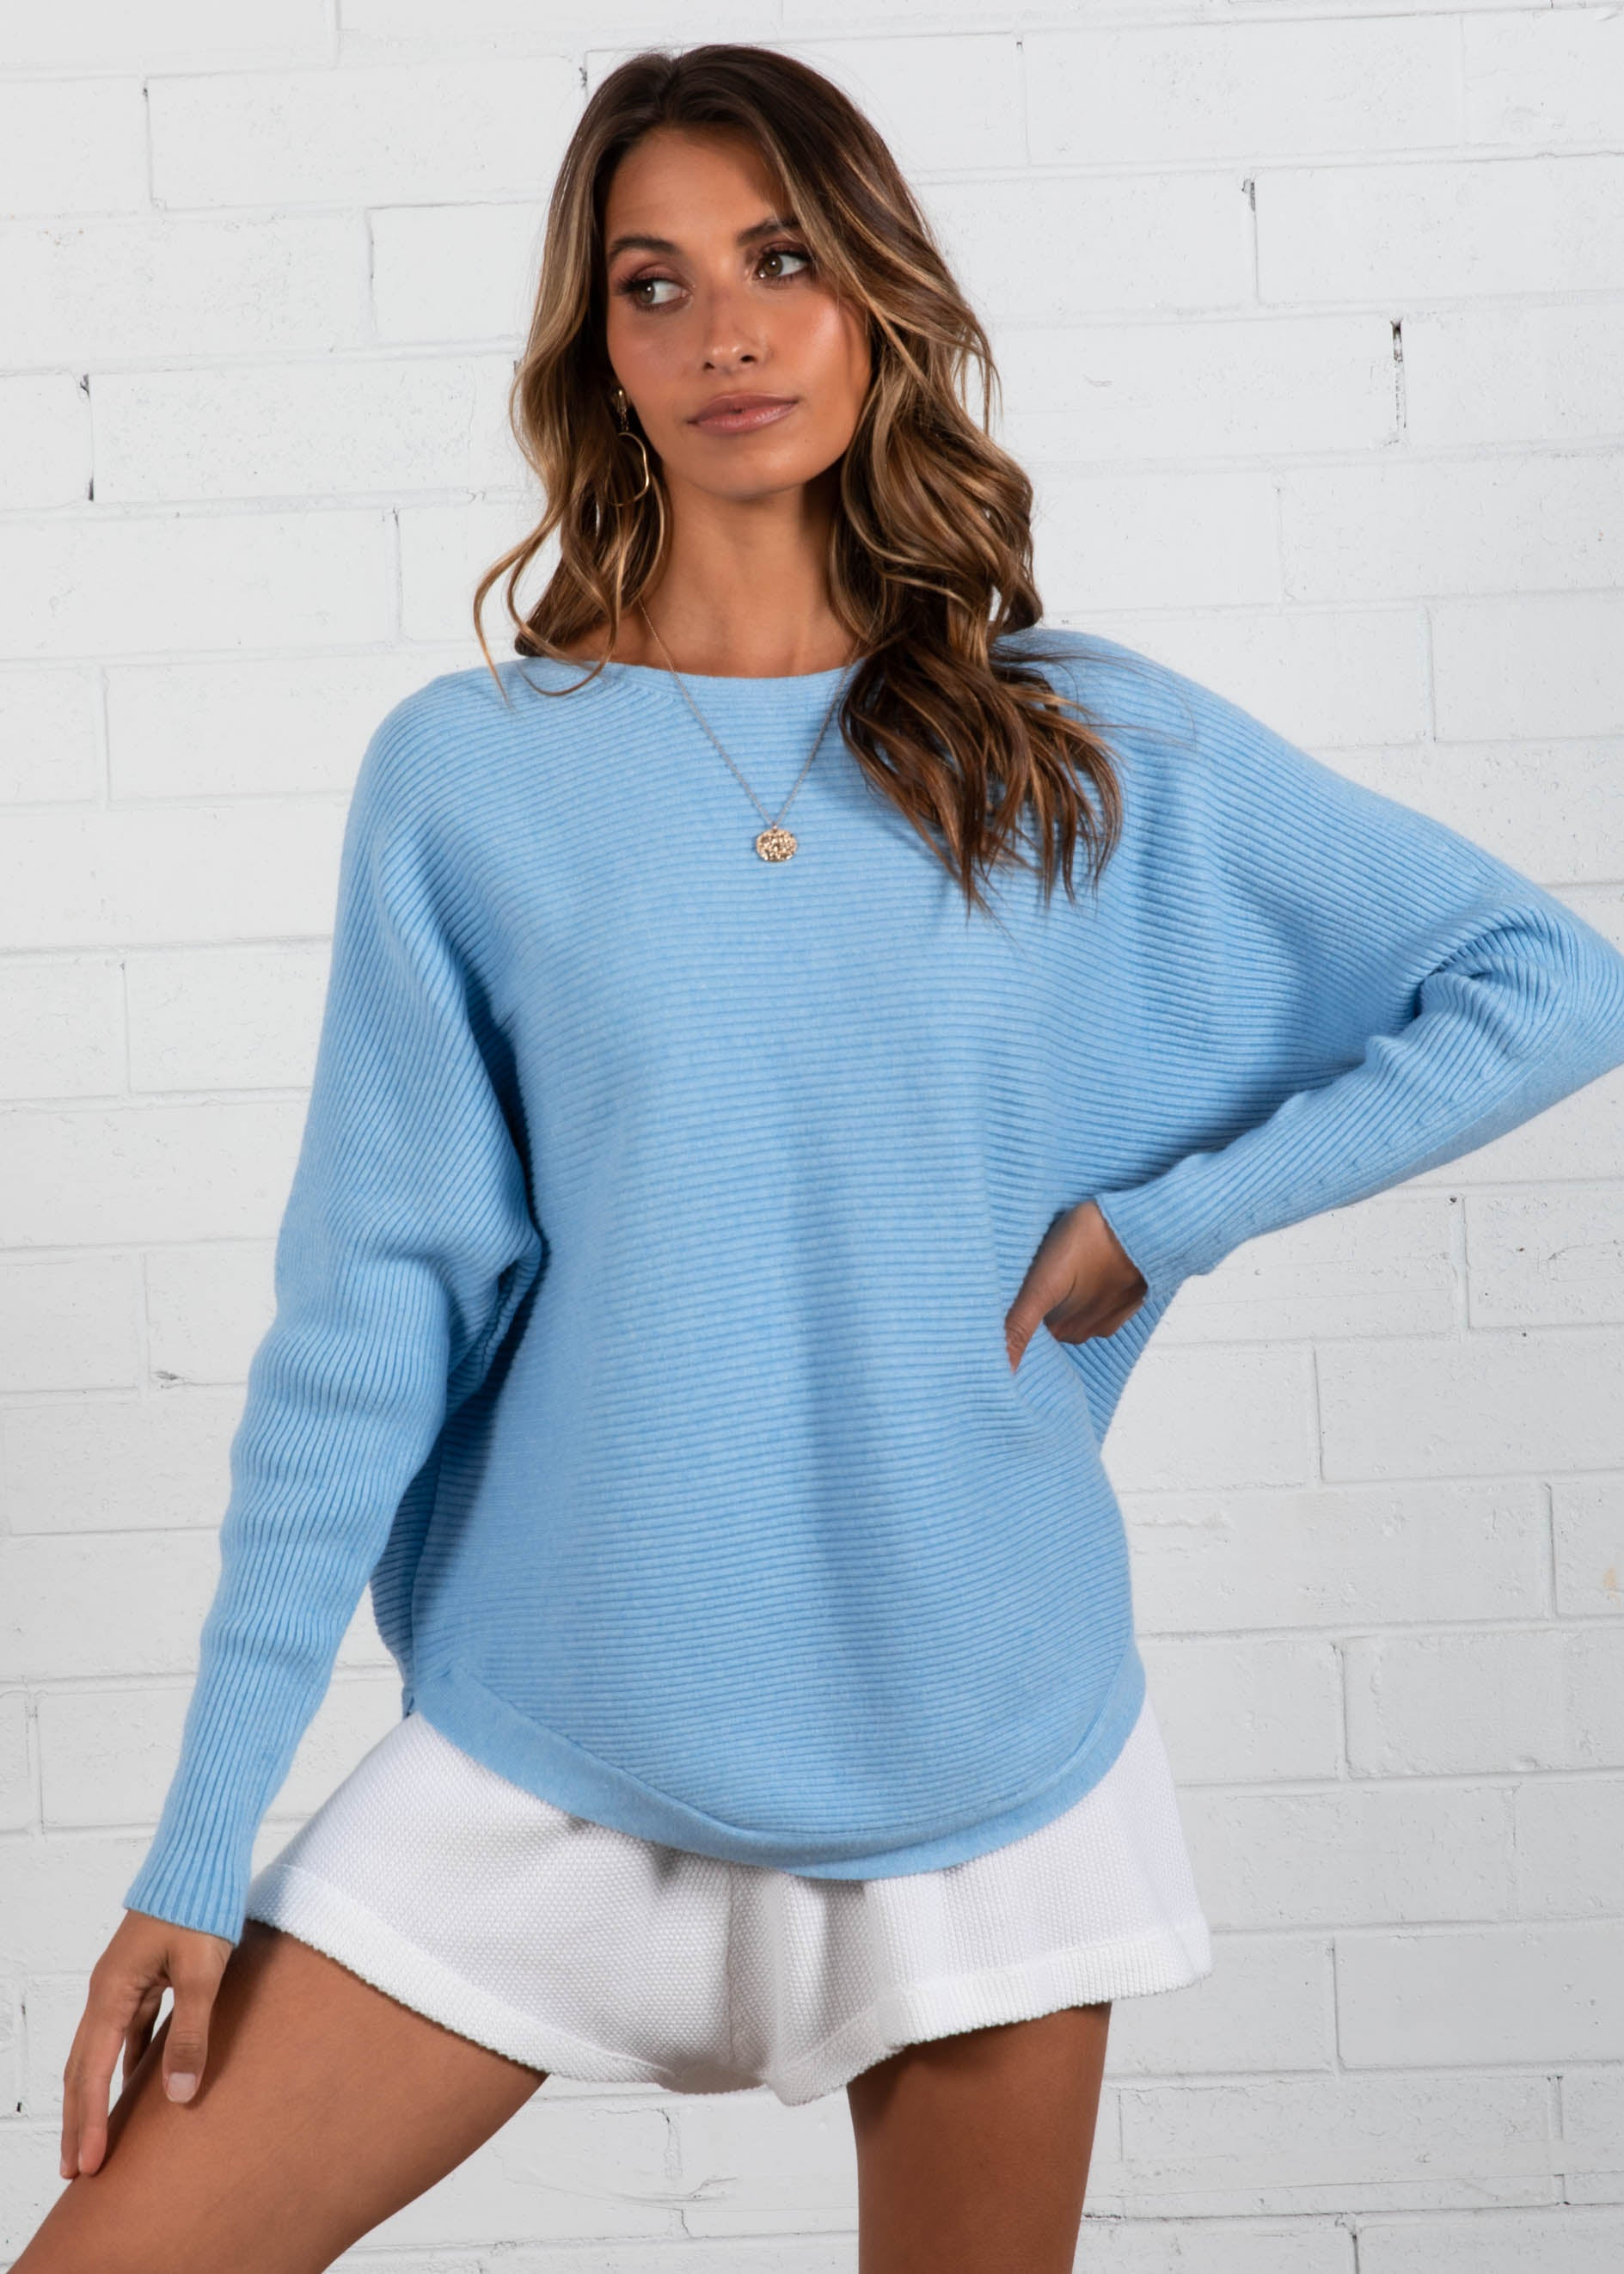 Better With You Sweater - Blue